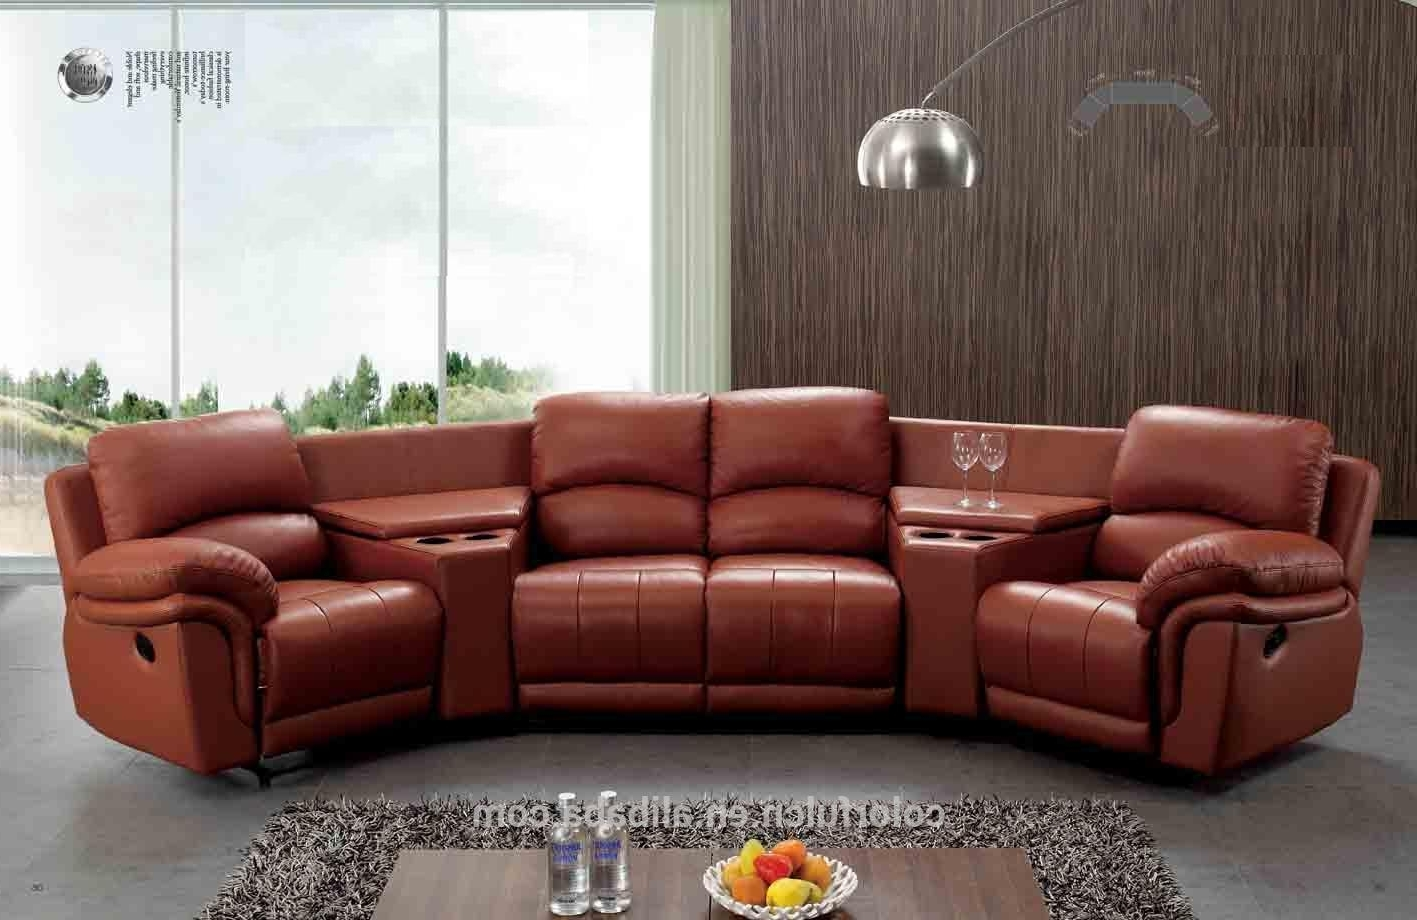 Red Leather Sectional Sofas With Recliners Inside Best And Newest Sectional Sofa Design: Semi Circular Sectional Sofa Couches Round (View 20 of 20)